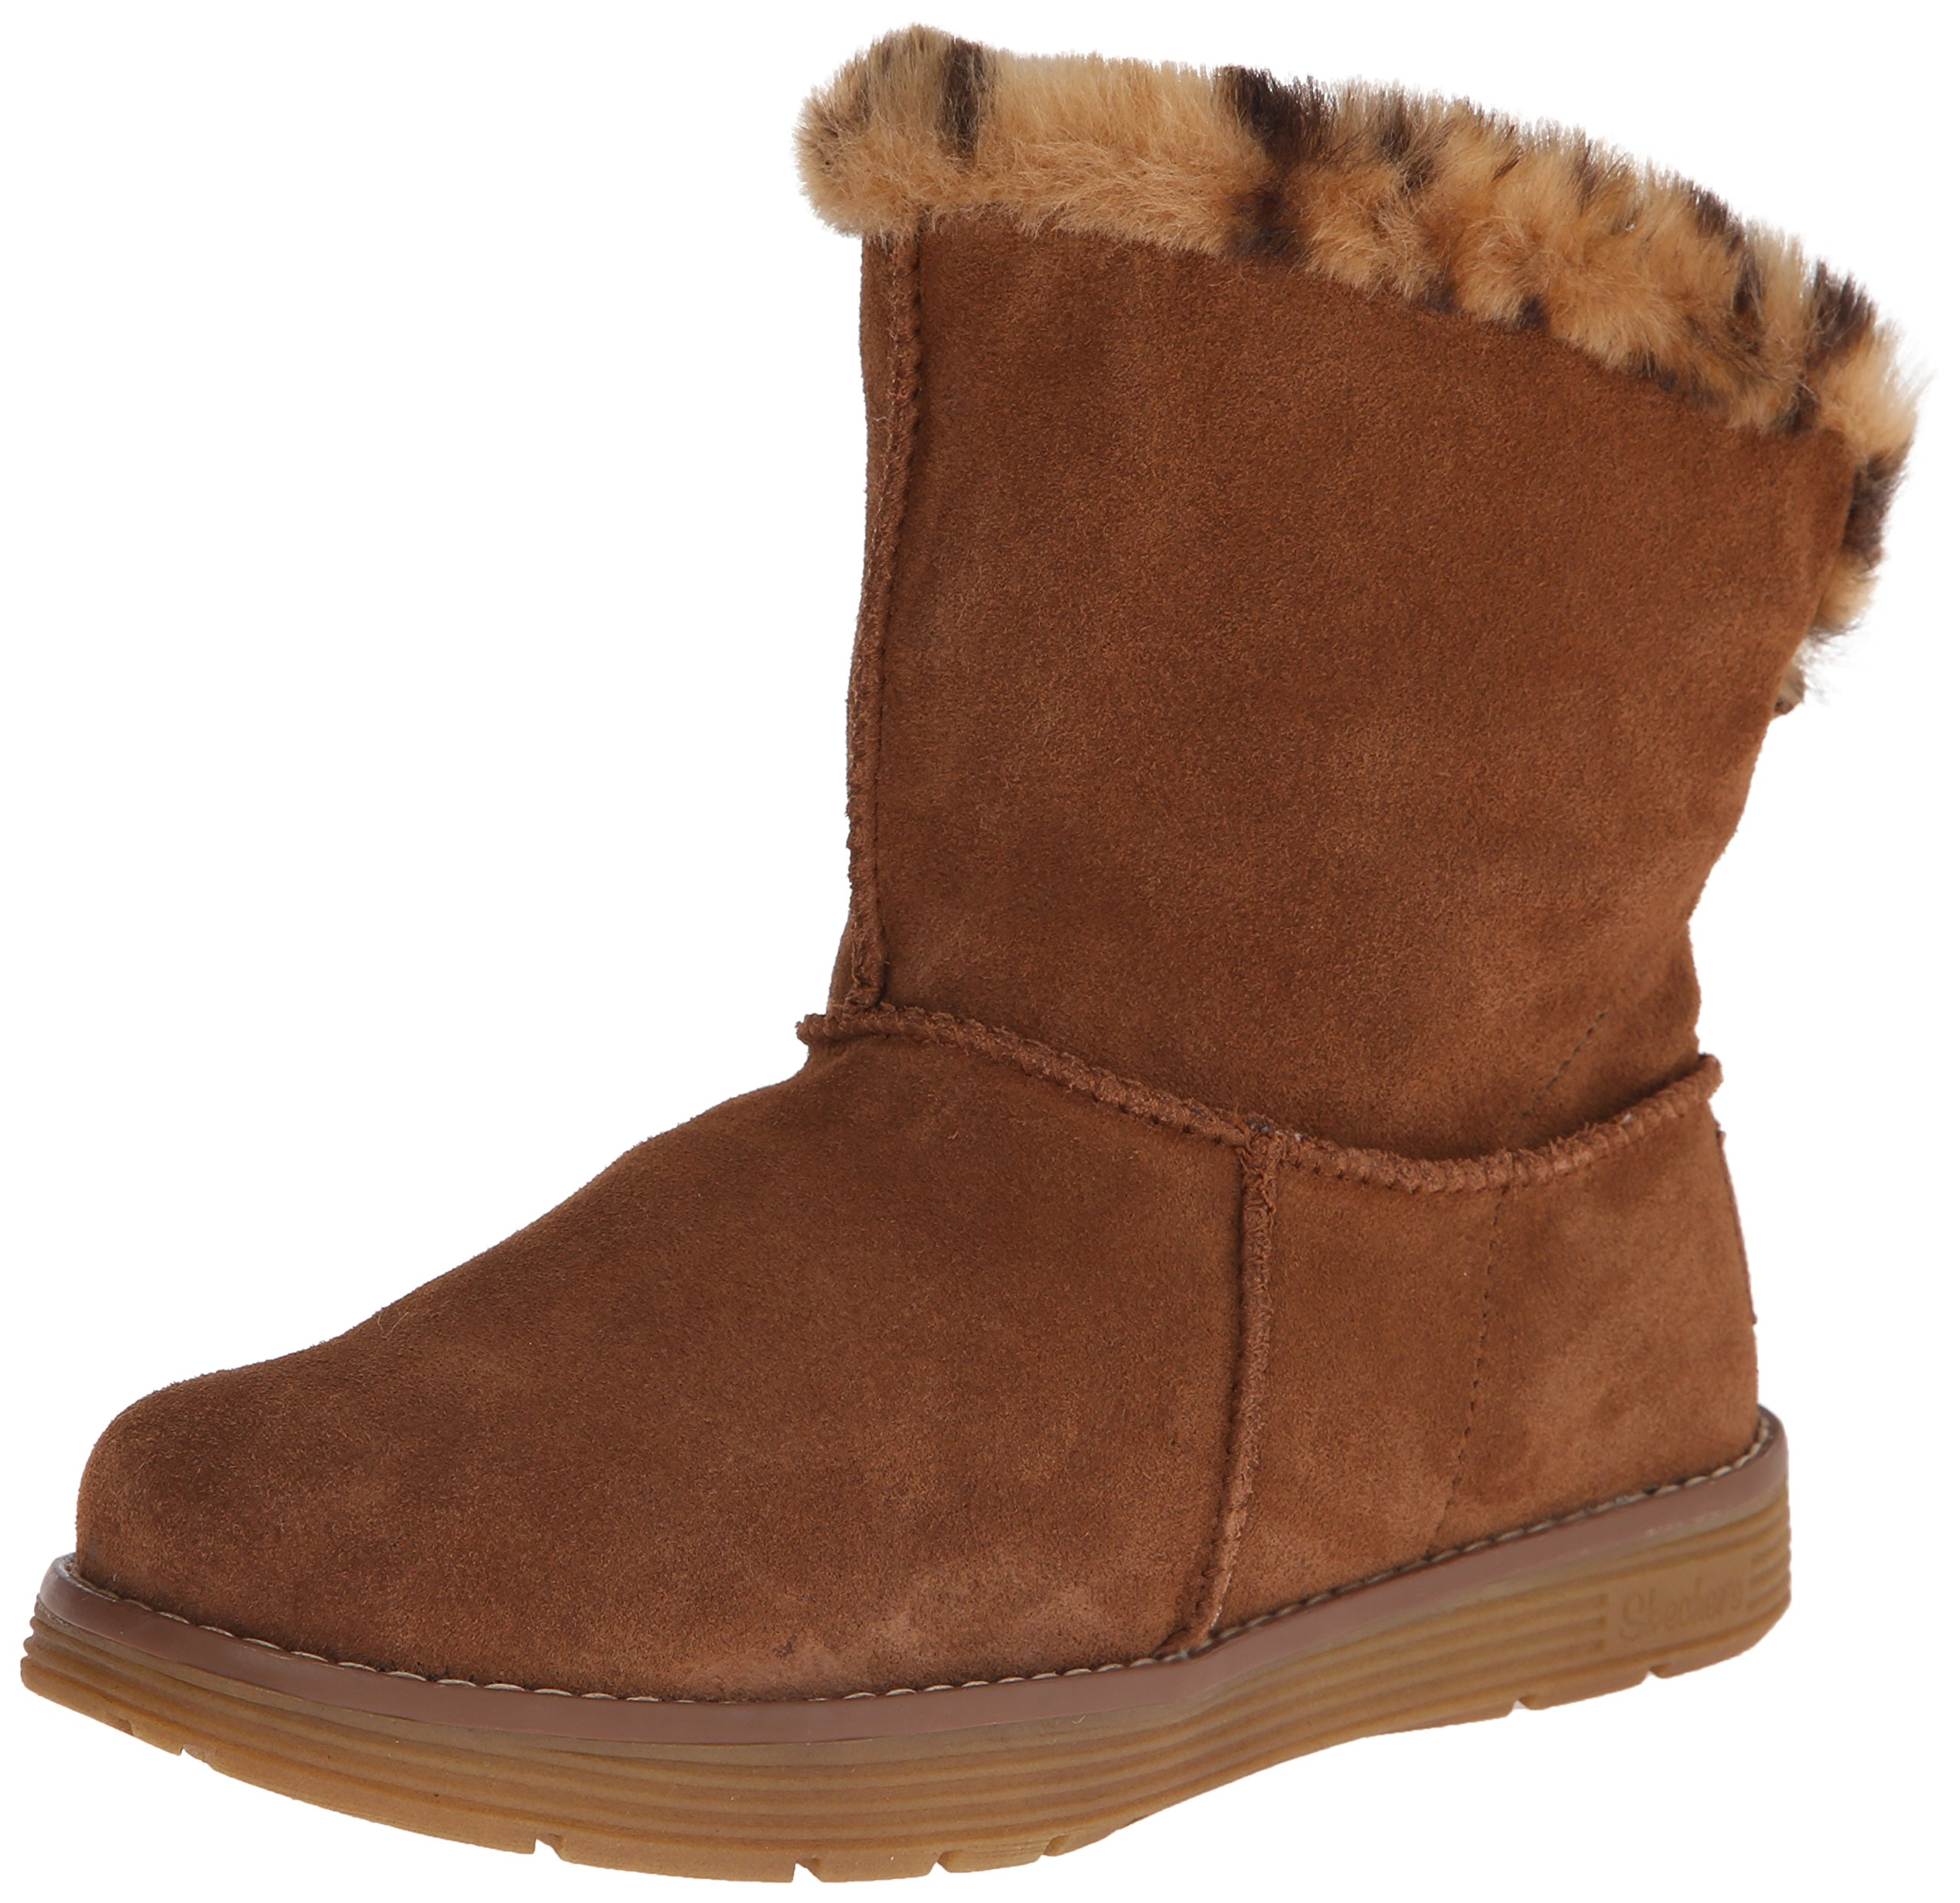 Women's J'Adore Polar Cold Weather Boot